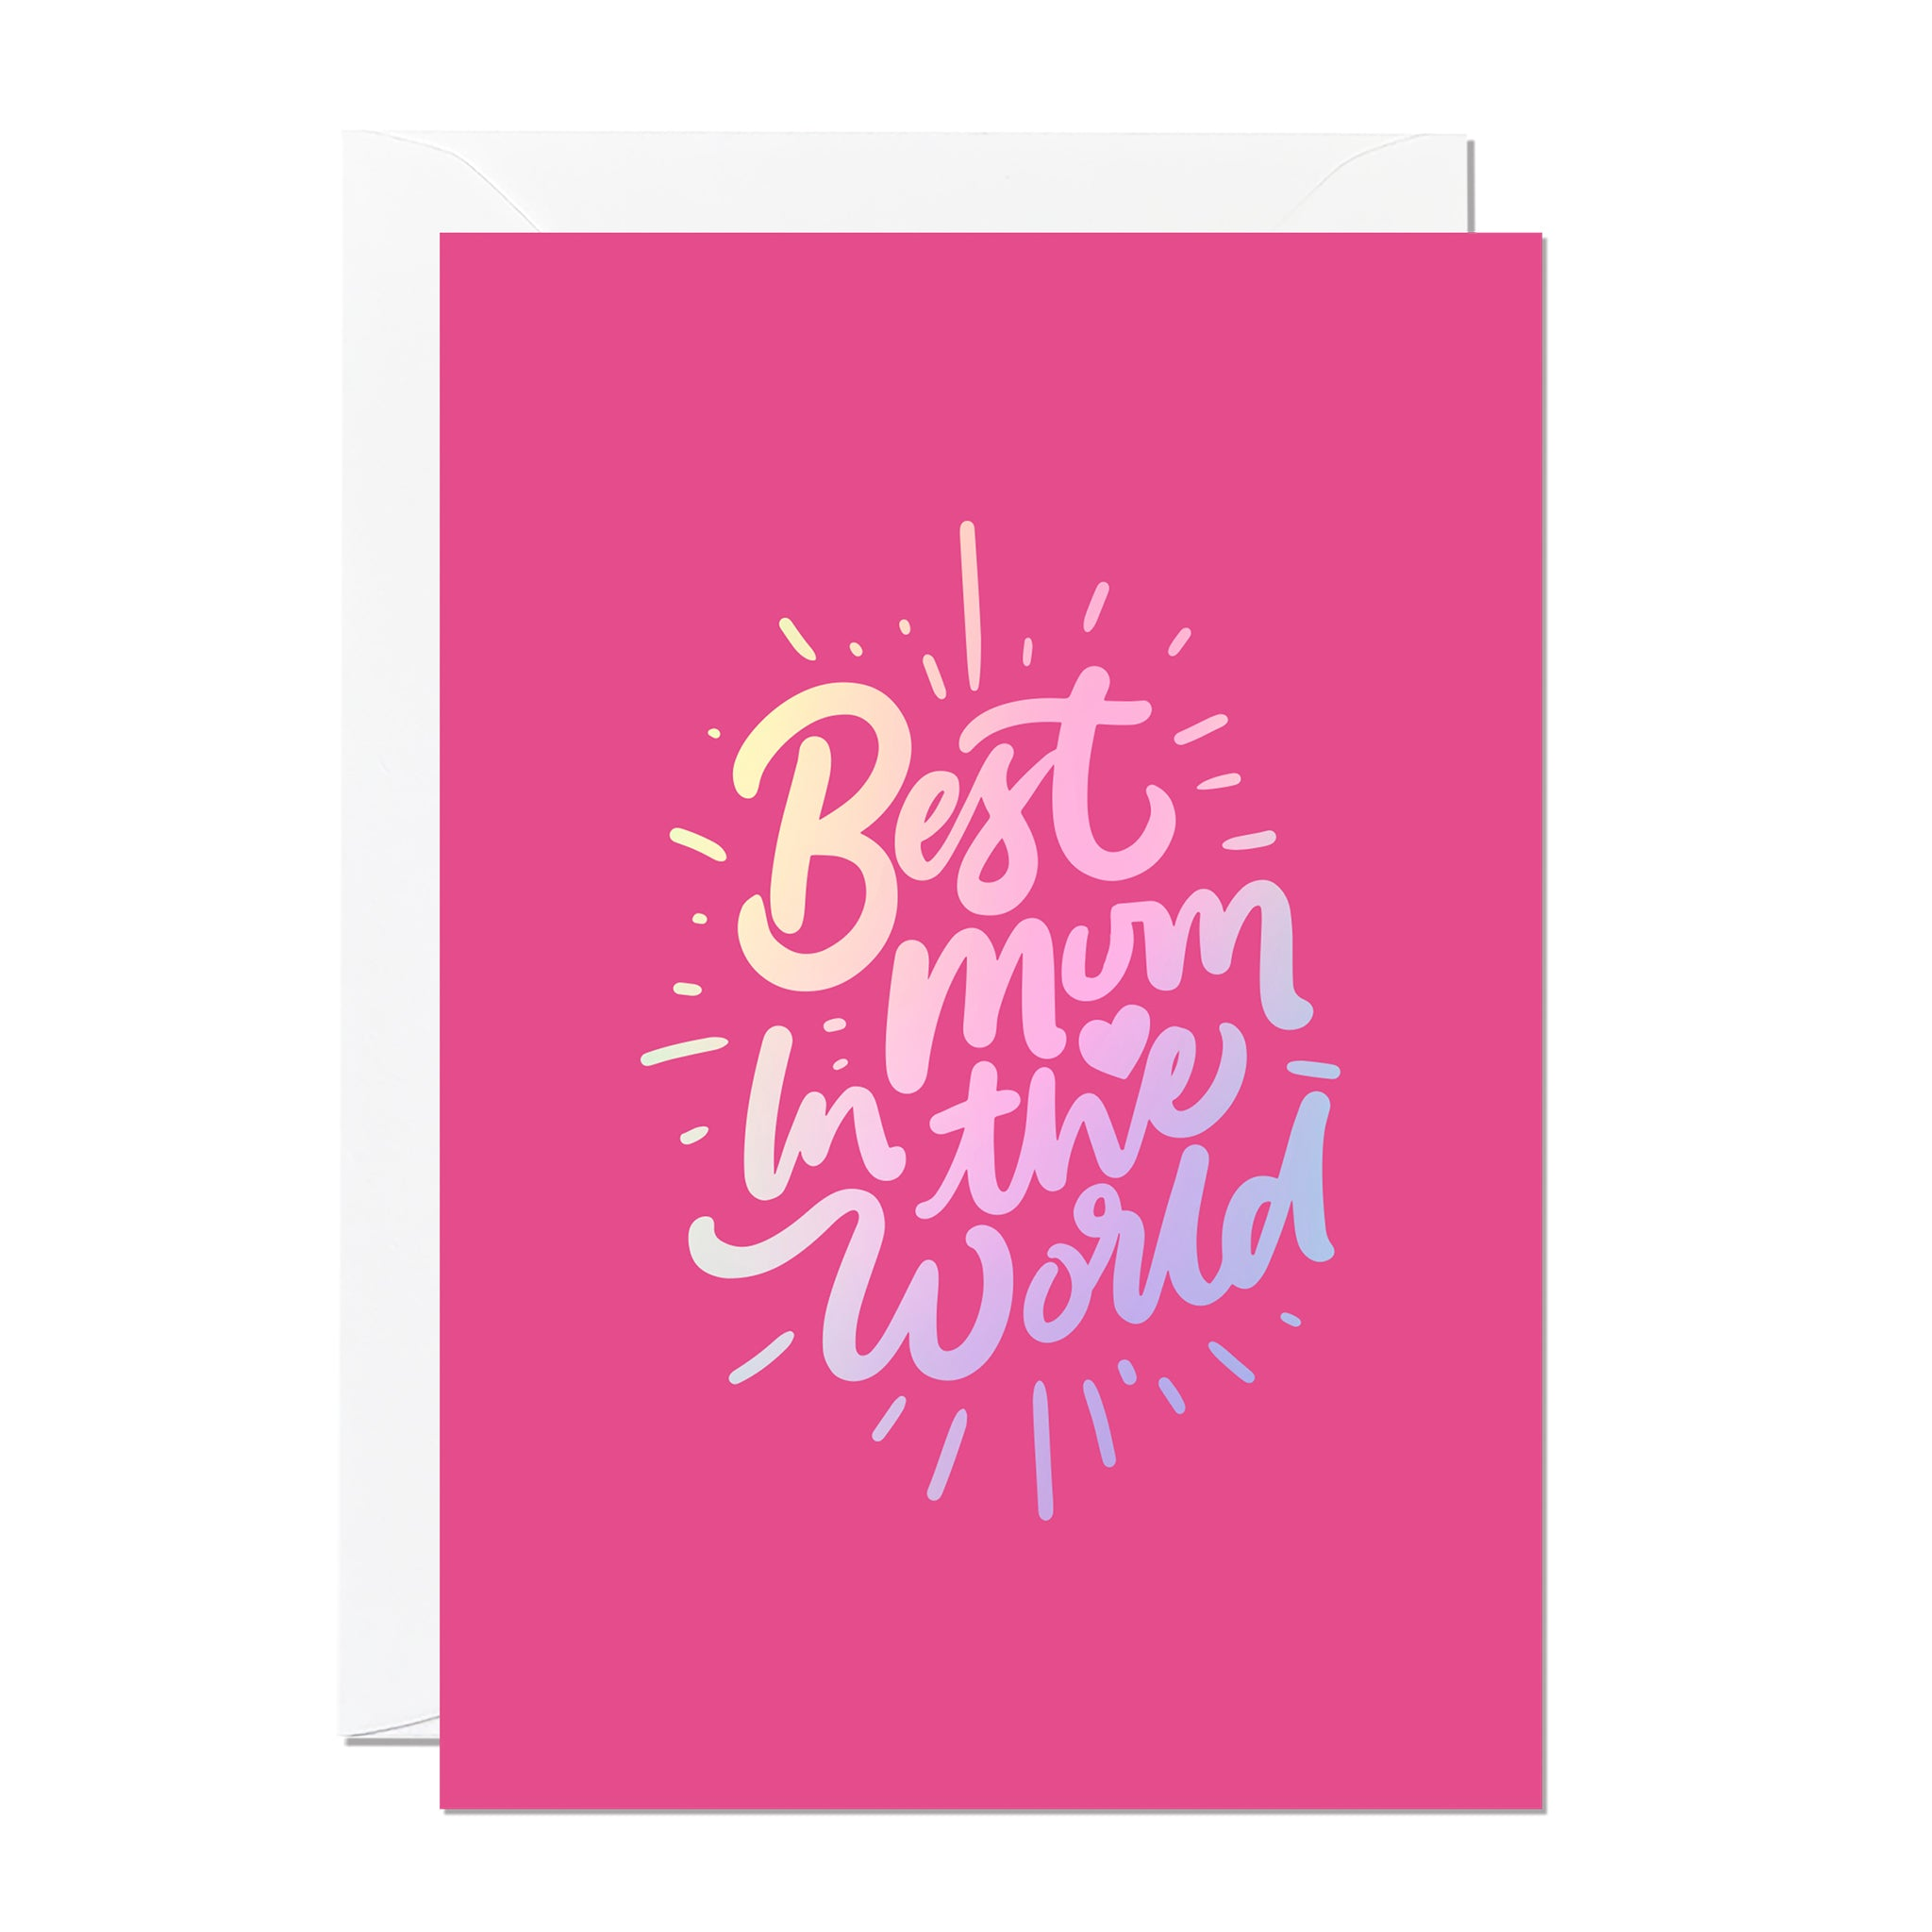 This is a Mother's Day card that says 'Best Mum in The World'. It's printed with a hot pink background and features hand lettering printed with a luxury iridescent foil